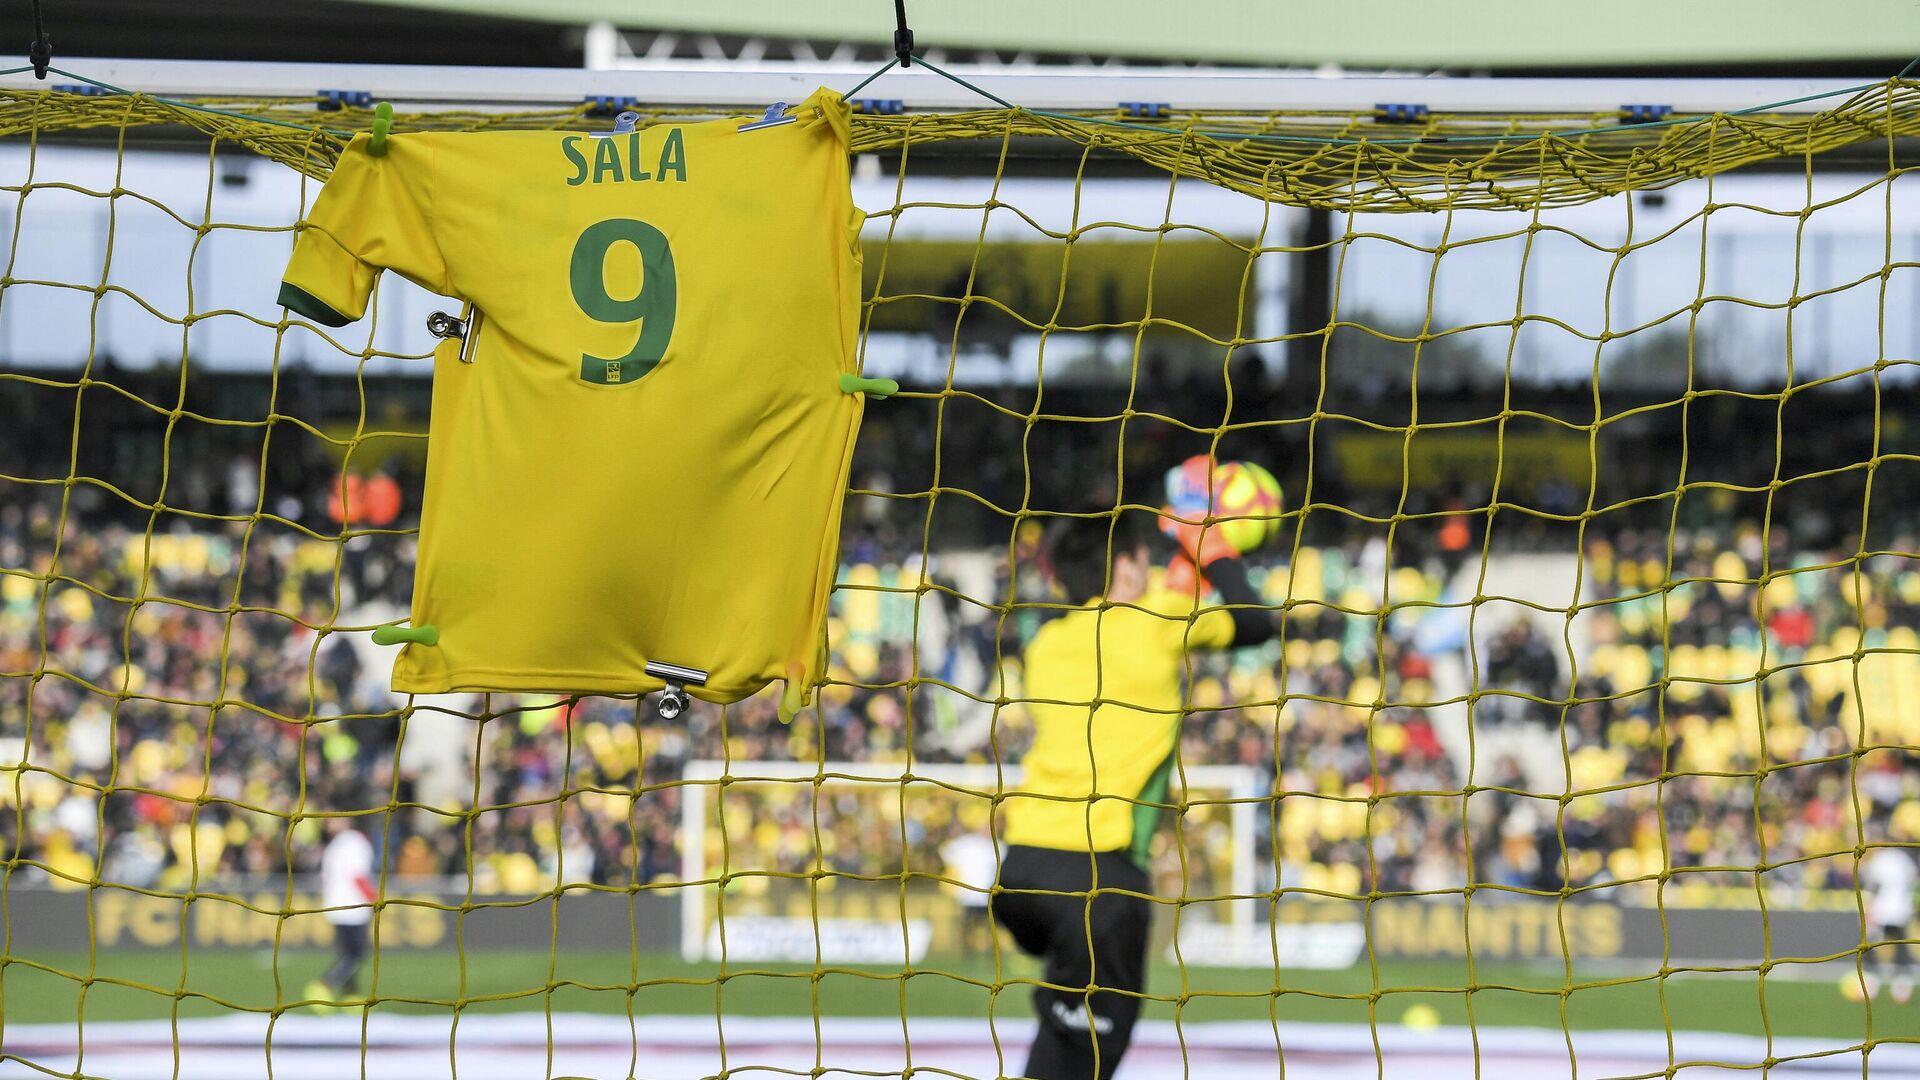 A #9 jersey is displayed on the goal in memory of late Argentinian forward Emiliano Sala prior to the French L1 football match between FC Nantes and Nimes Olympique at the La Beaujoire stadium in Nantes, western France on February 10, 2019. - FC Nantes football club announced on February 8, 2019 that it will freeze the #9 jersey as a tribute to Cardiff City and former Nantes footballer Emiliano Sala who died in a plane crash in the English Channel on January 21, 2019. (Photo by LOIC VENANCE / AFP) - РИА Новости, 1920, 10.03.2021